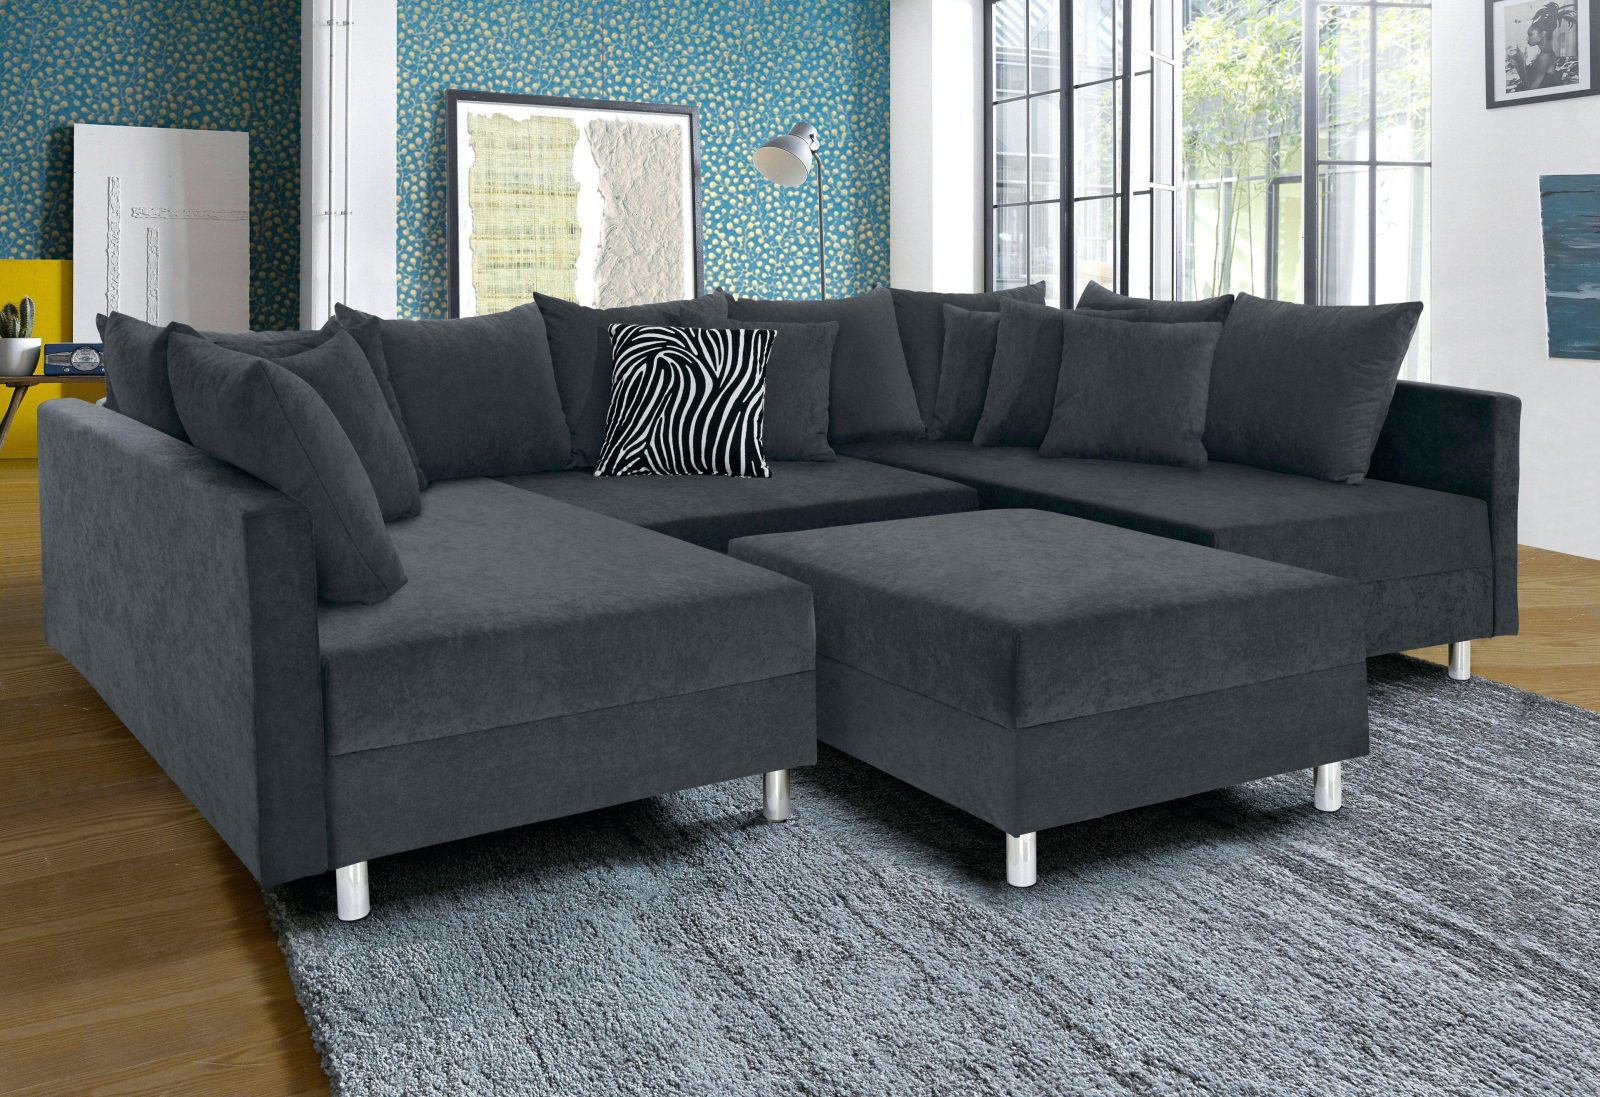 couch auf raten einzigartig attraktive ideen sofa auf. Black Bedroom Furniture Sets. Home Design Ideas